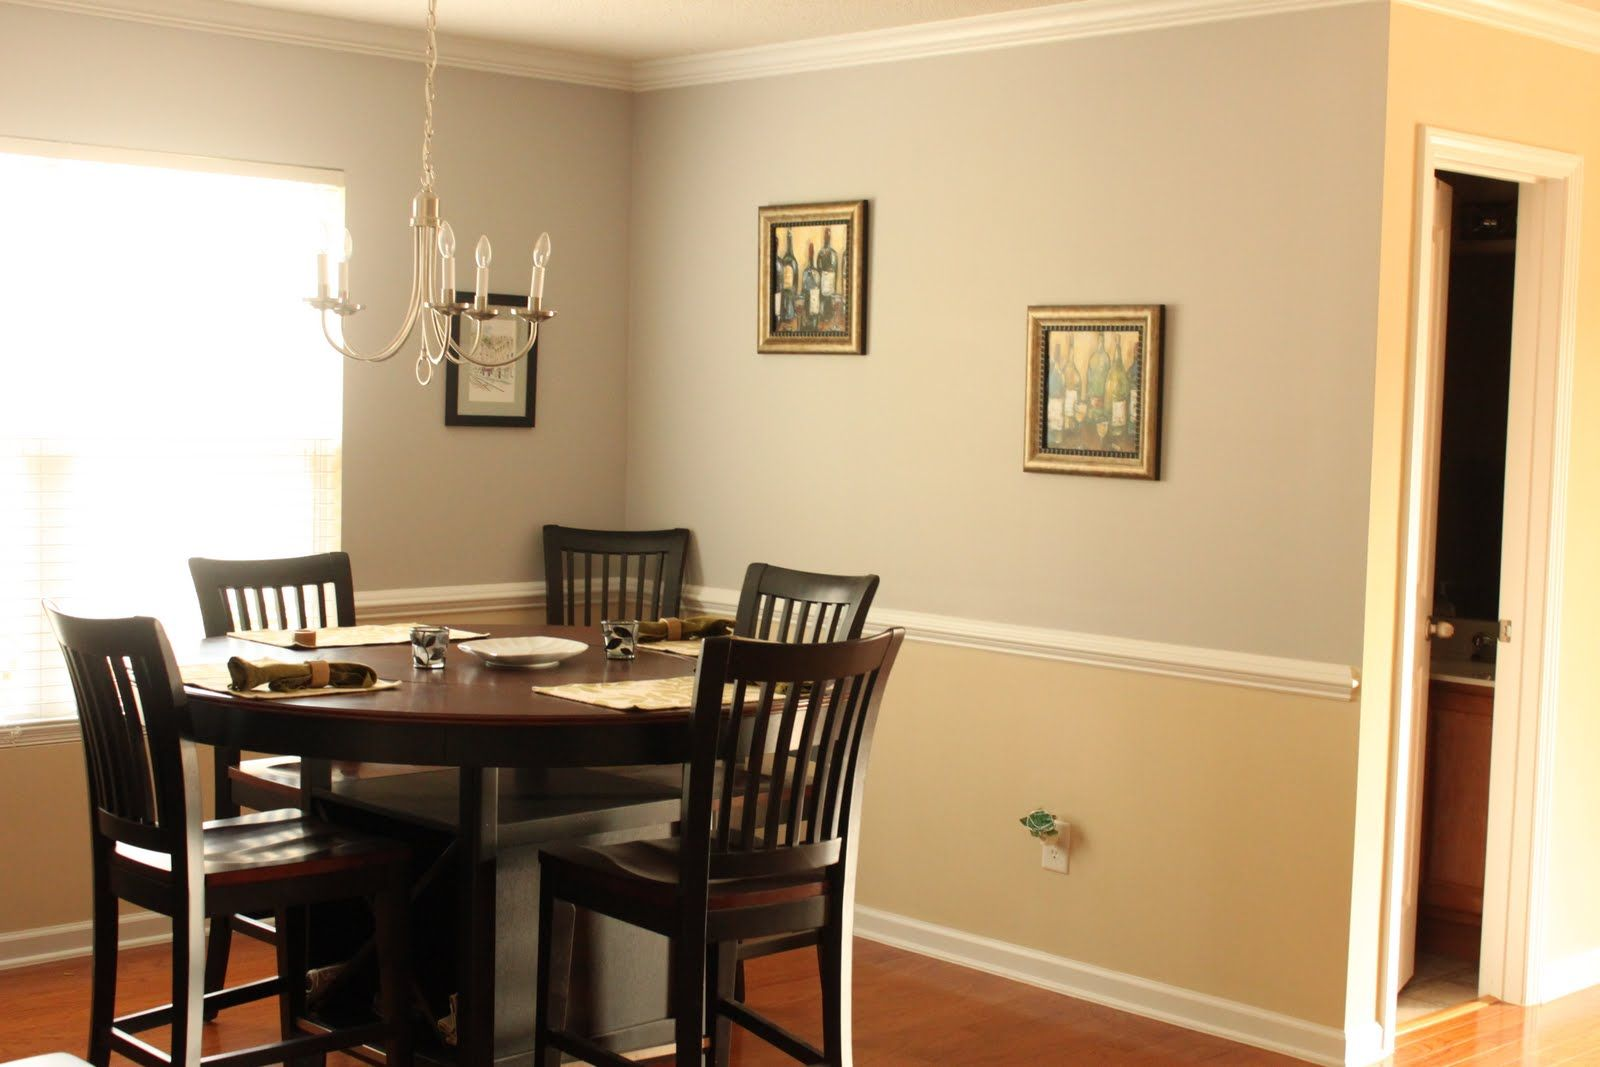 Gray and beige scheme best color to paint a interior room for Best shaped table for small dining room